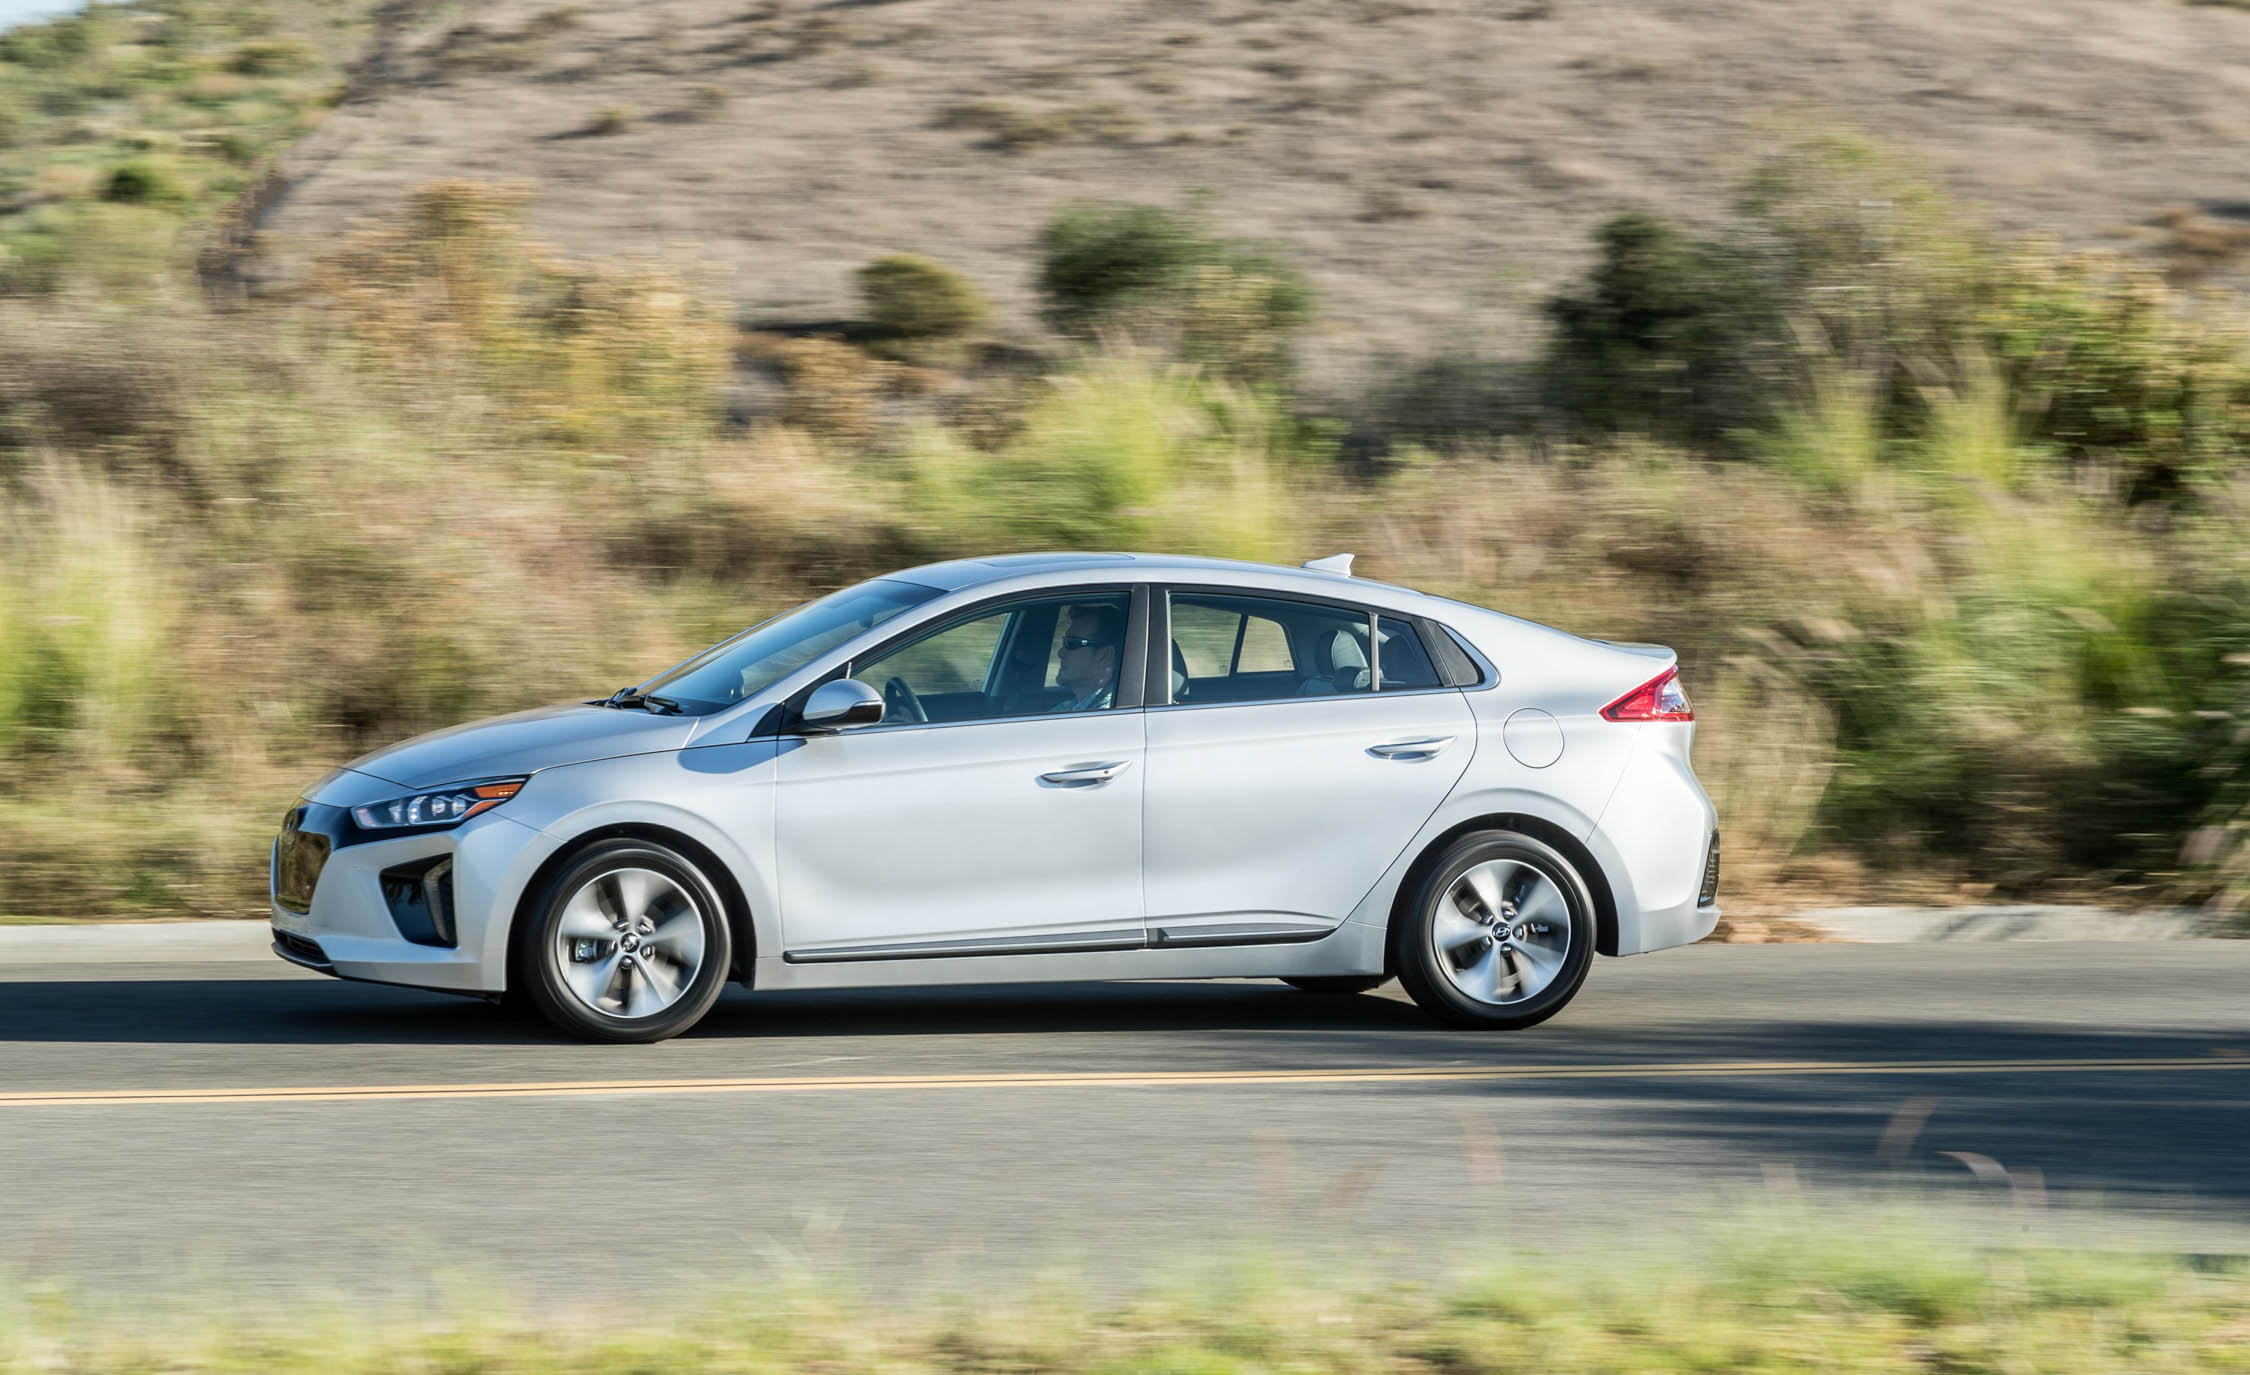 2017 Hyundai Ioniq Electric Test Drive Side View (Photo 34 of 67)